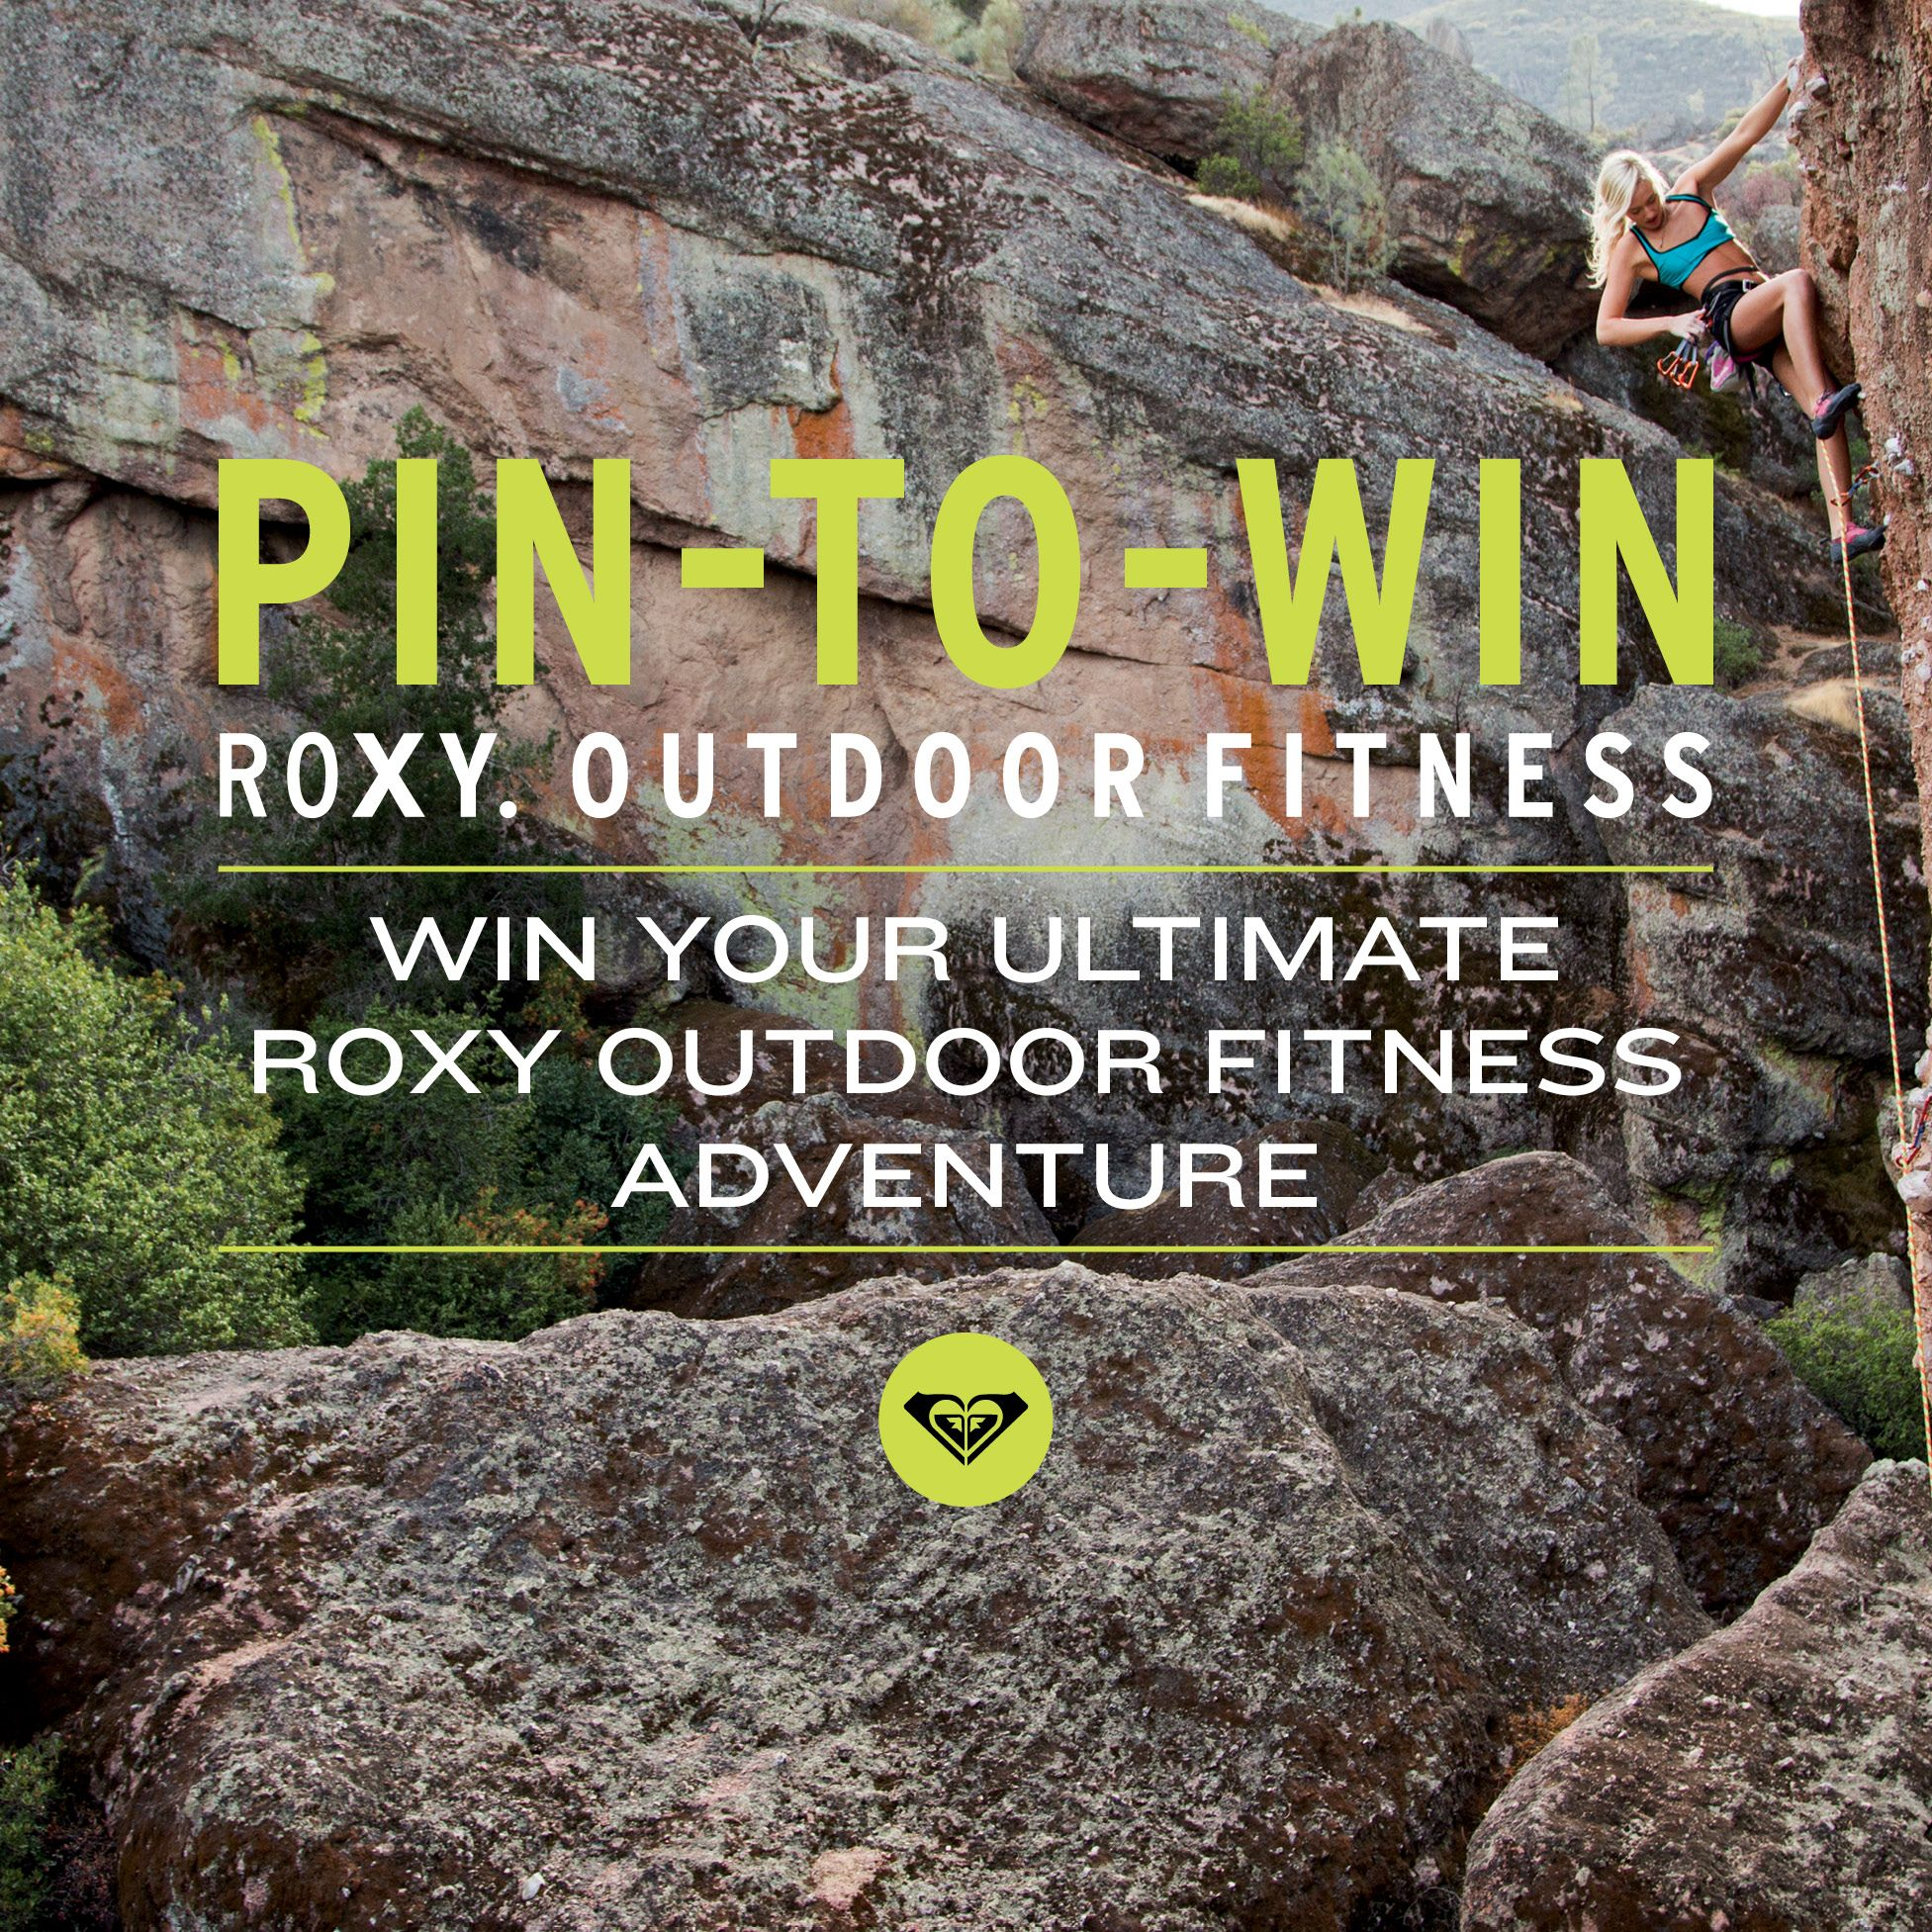 Win your ULTIMATE Outdoor Adventure! Play our Pin-To-Win ...